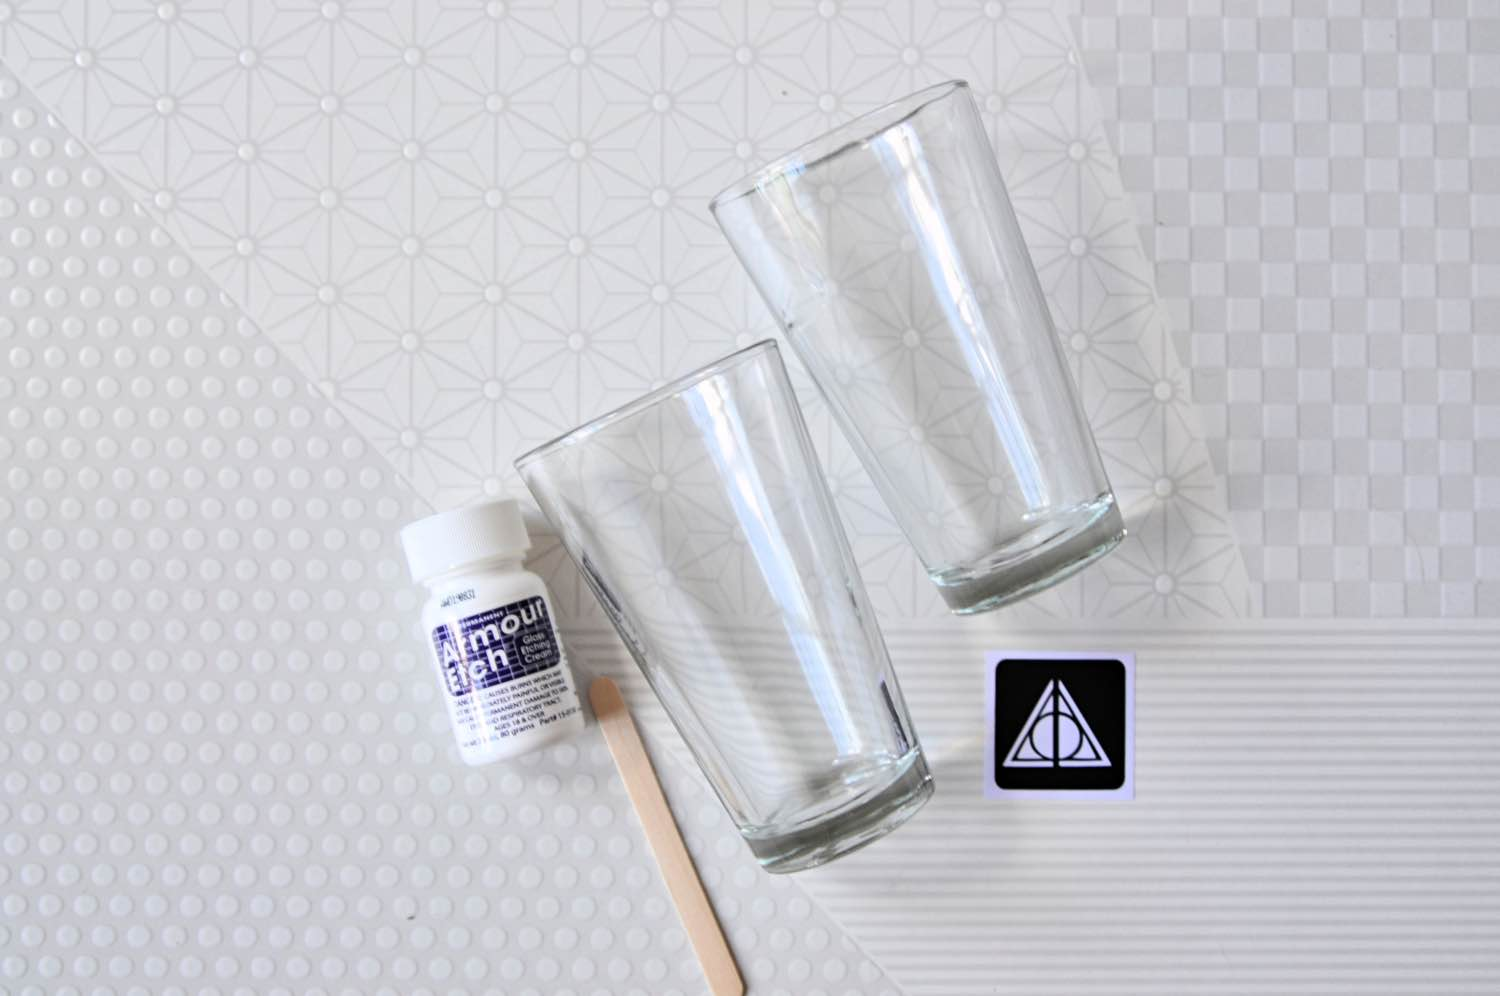 supplies to make deathly hallows glass etched pint glasses